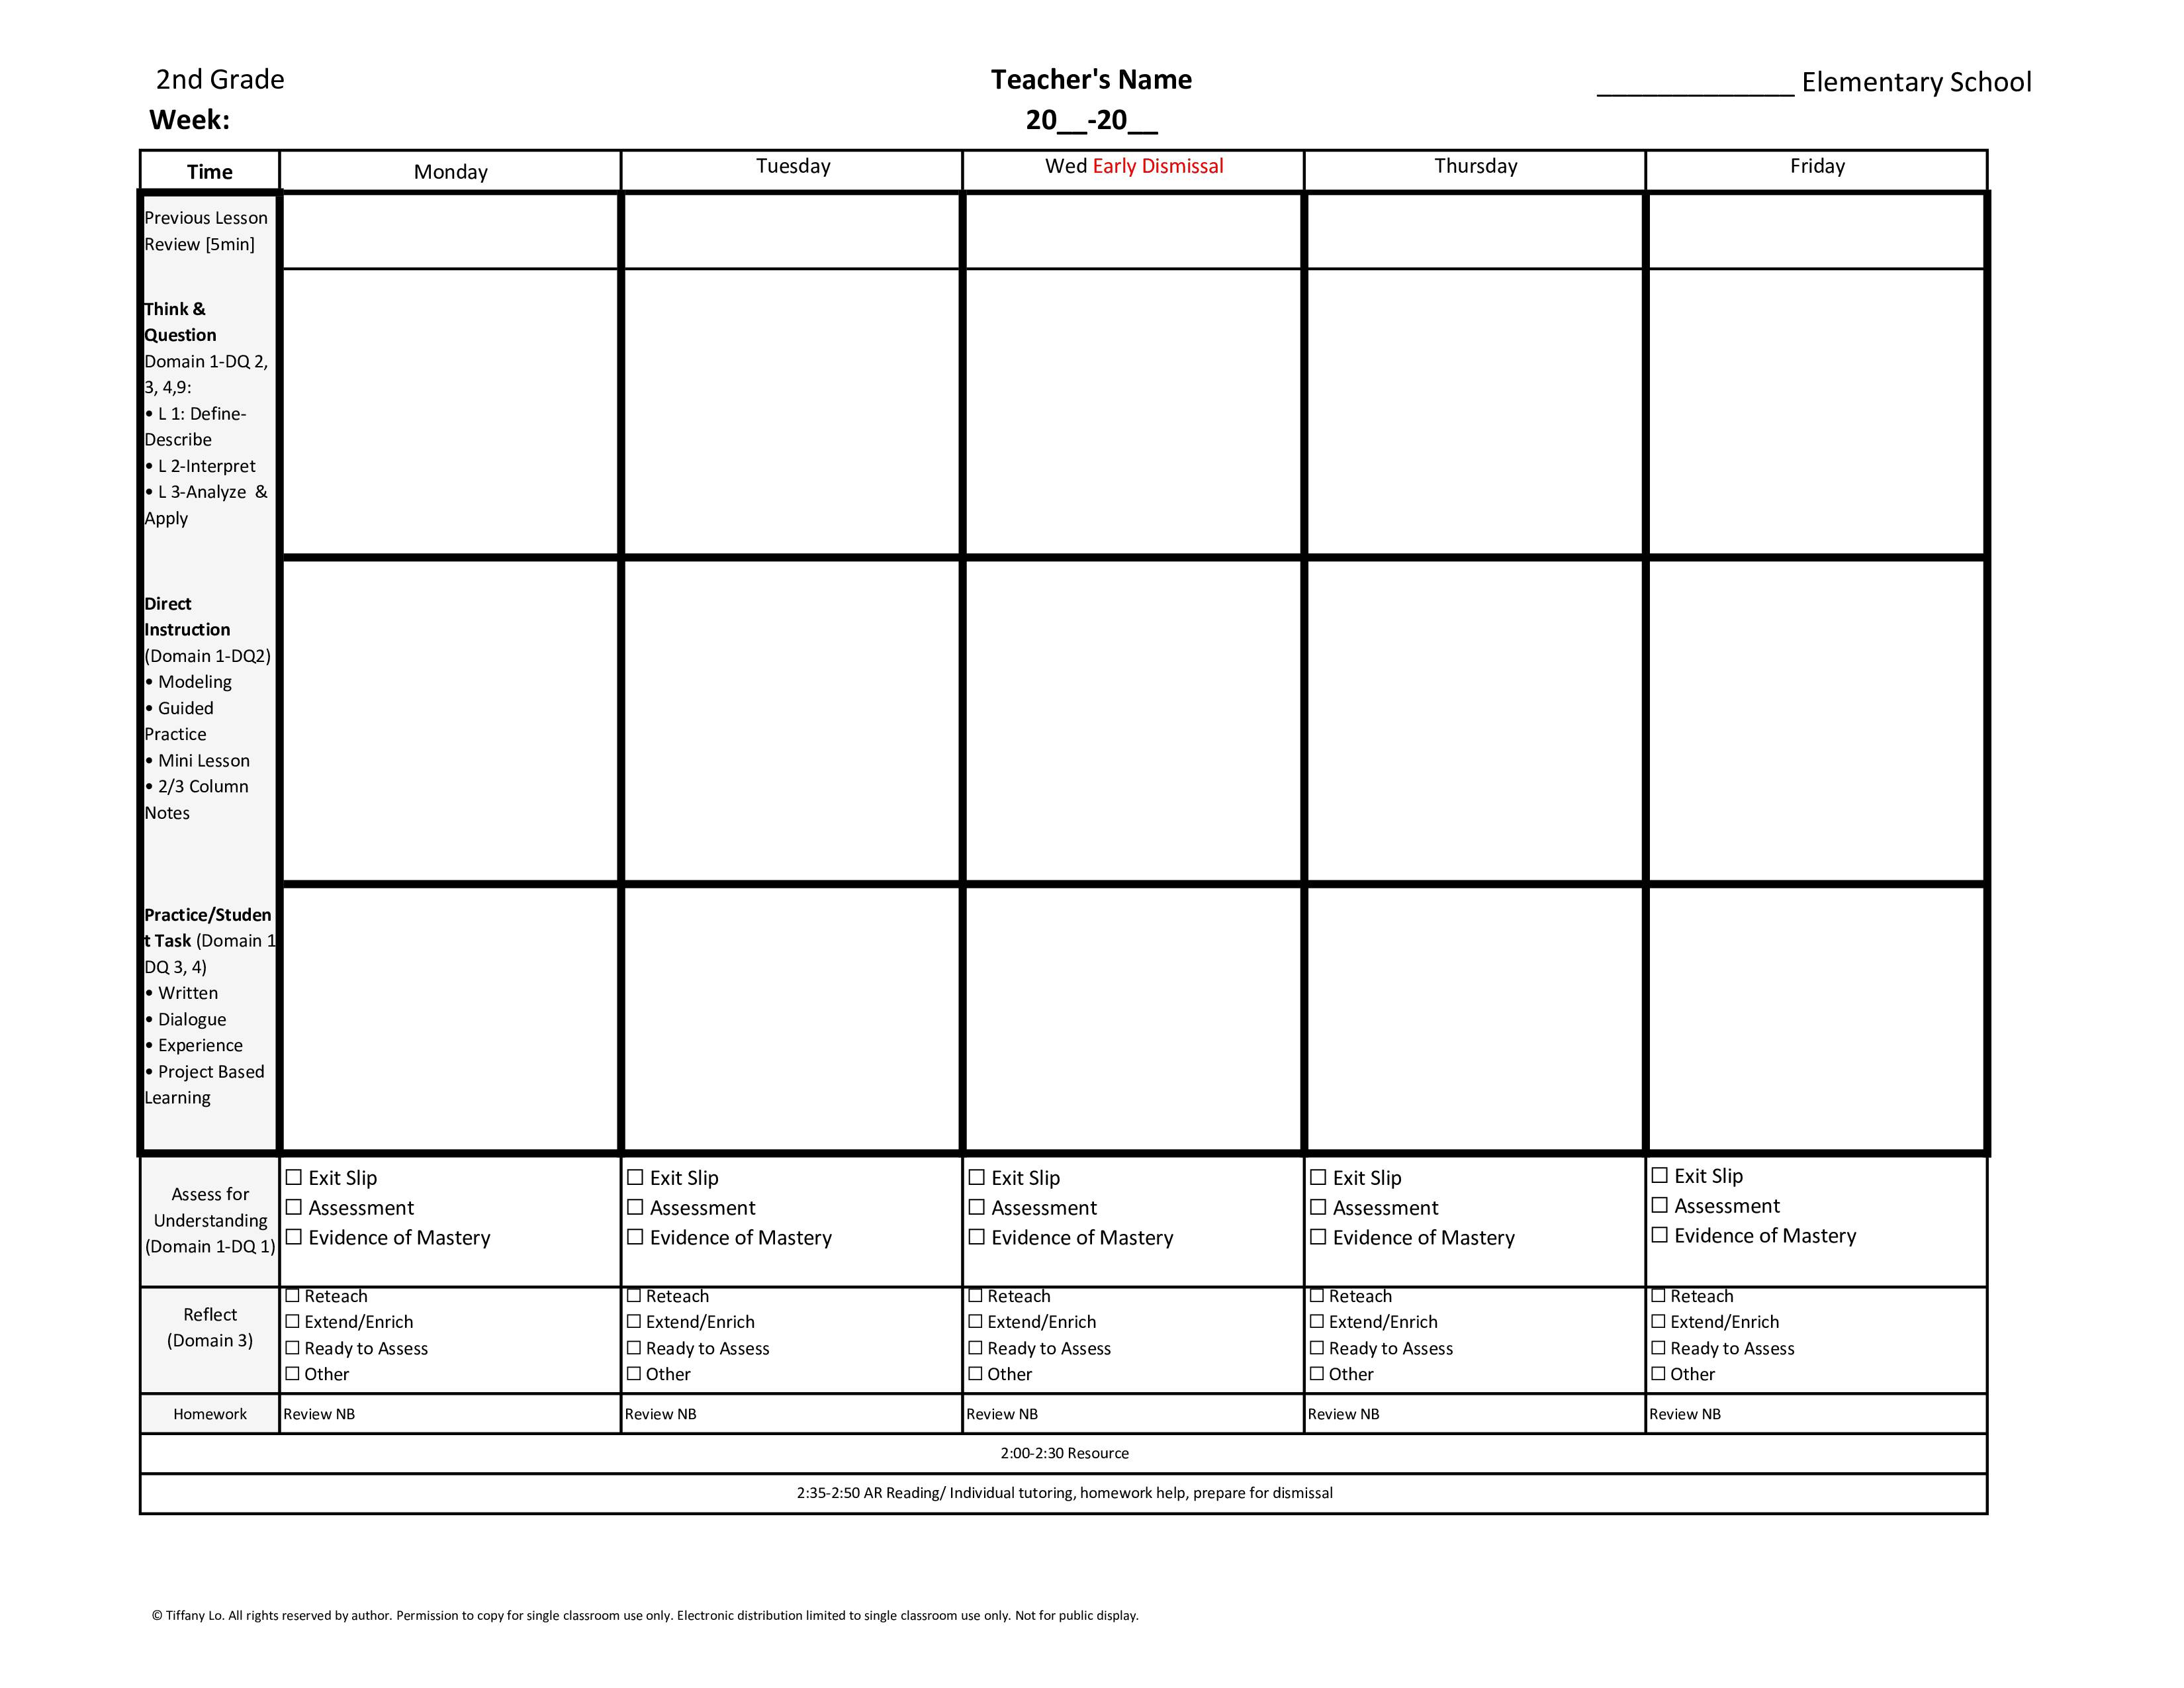 2nd Second Grade Common Core Weekly Lesson Plan Template W